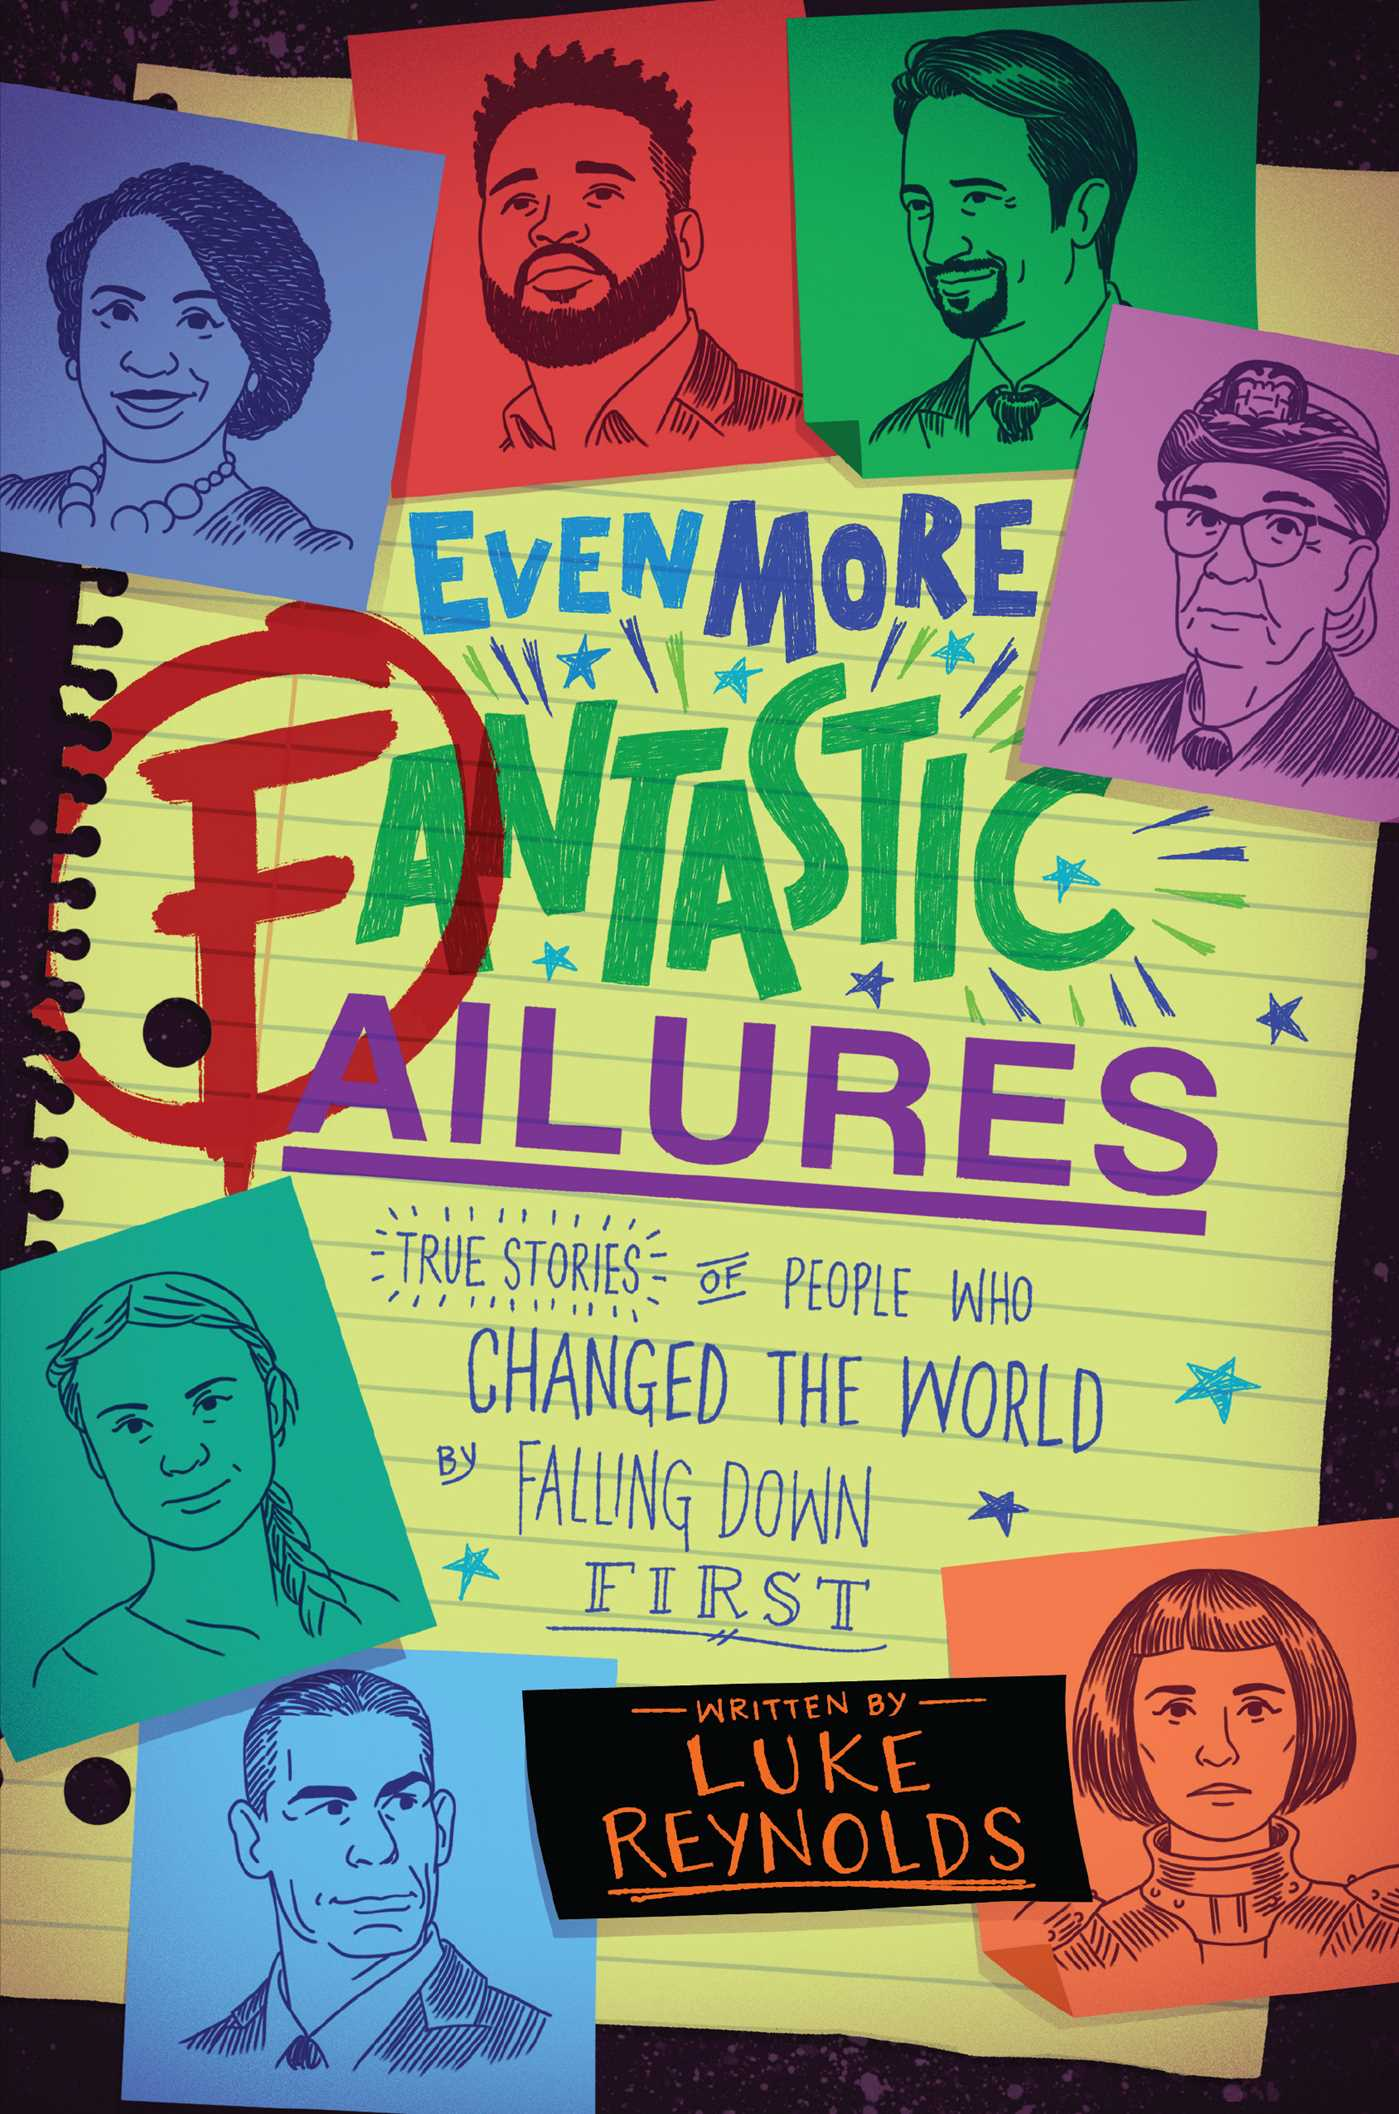 Even More Fantastic Failures True Stories of People Who Changed the World by Falling Down FirstbyLuke Reynolds